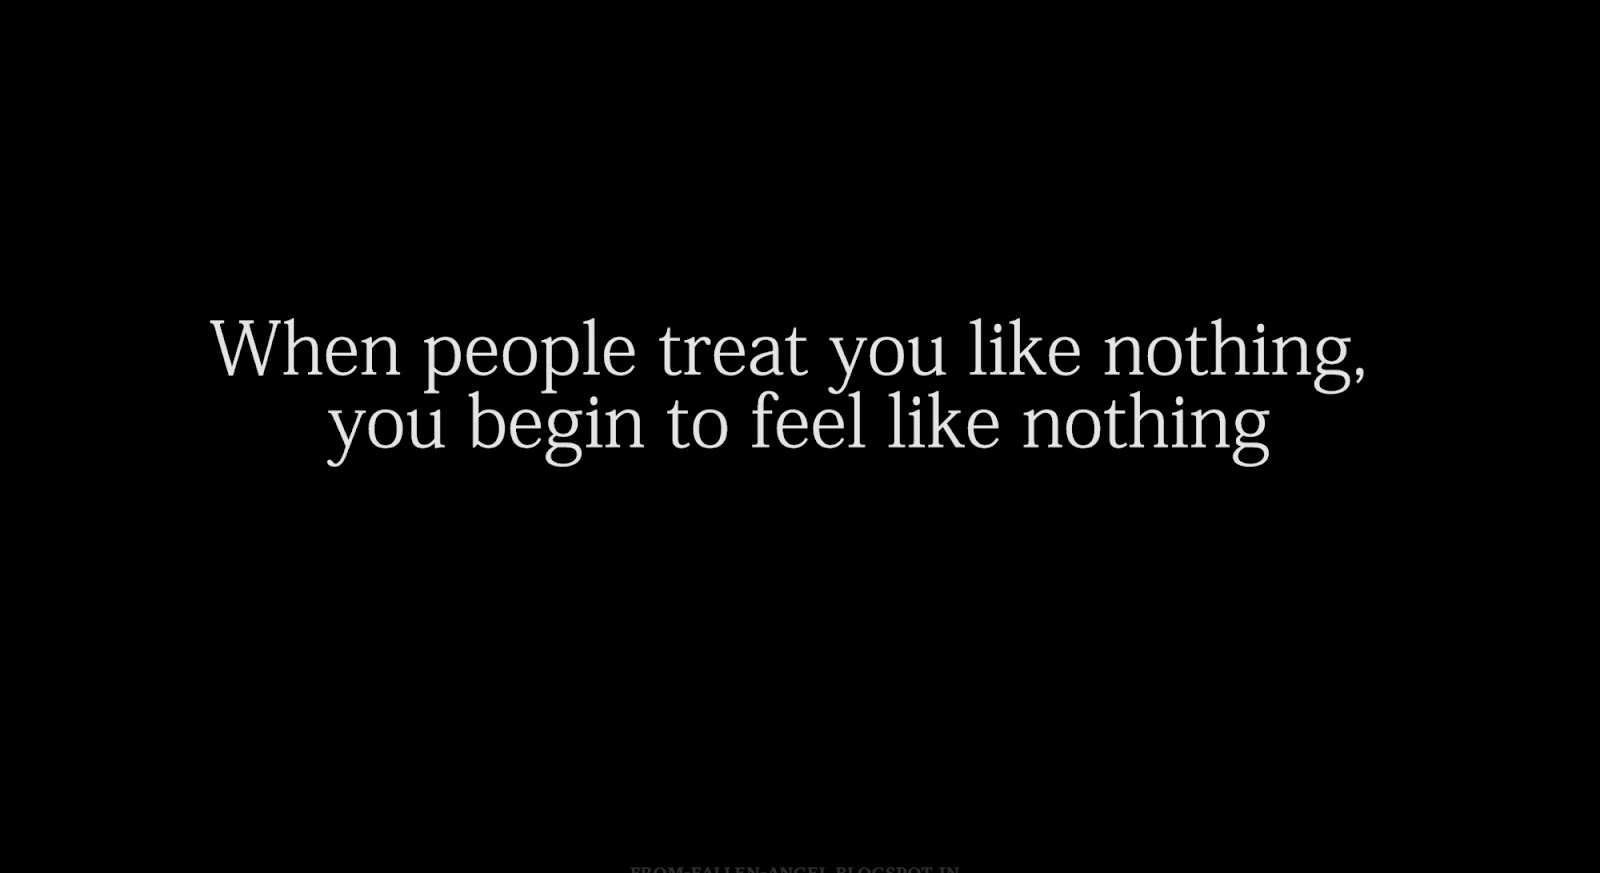 When people treat you like nothing, you begin to feel like nothing